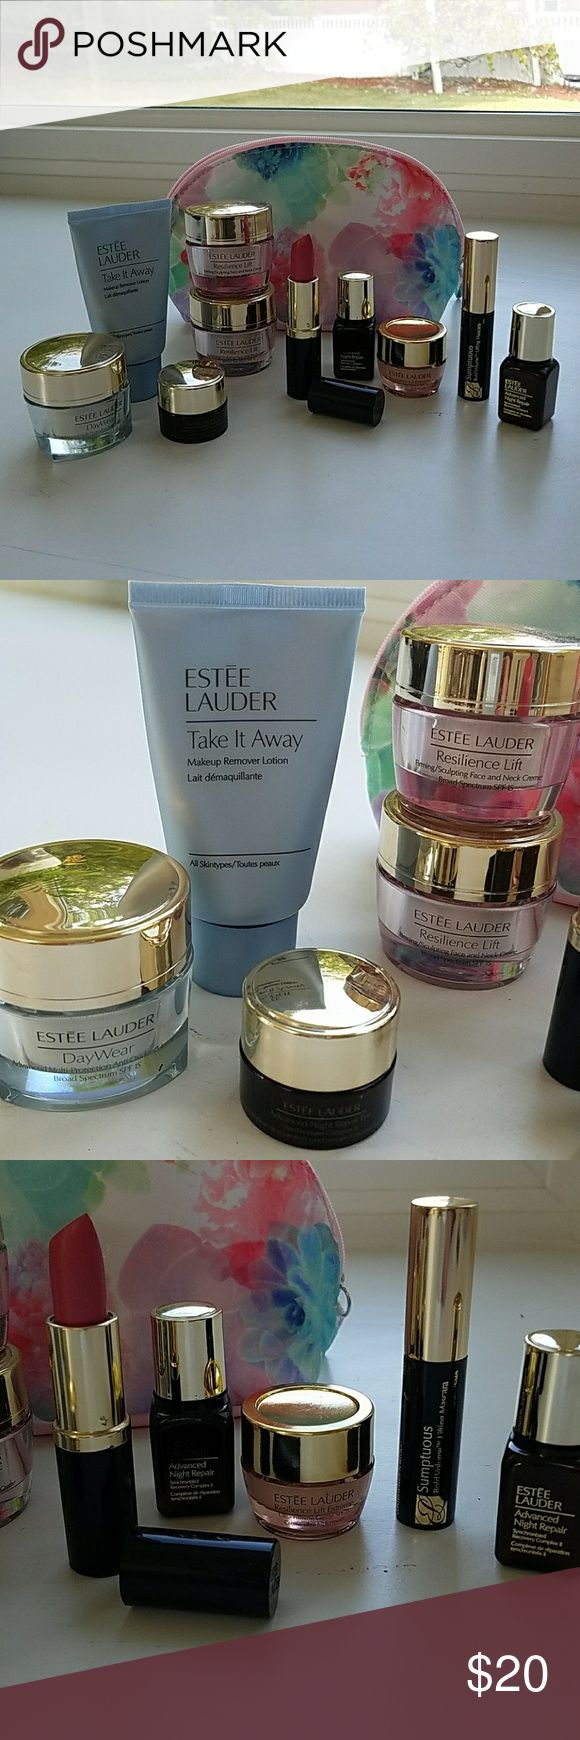 Estee Lauder face products with lipstick Estee Lauder Day wear, makeup remover lotion, Advanced night repair eyes, 2 Resilience Lift firming face and neck cremes, 2 Advanced night Repair for face, Resilience lift Extreme, Pure color candy shimmer lipstick, and Sumptuous lifting mascara. All new and never used. Estee Lauder Other